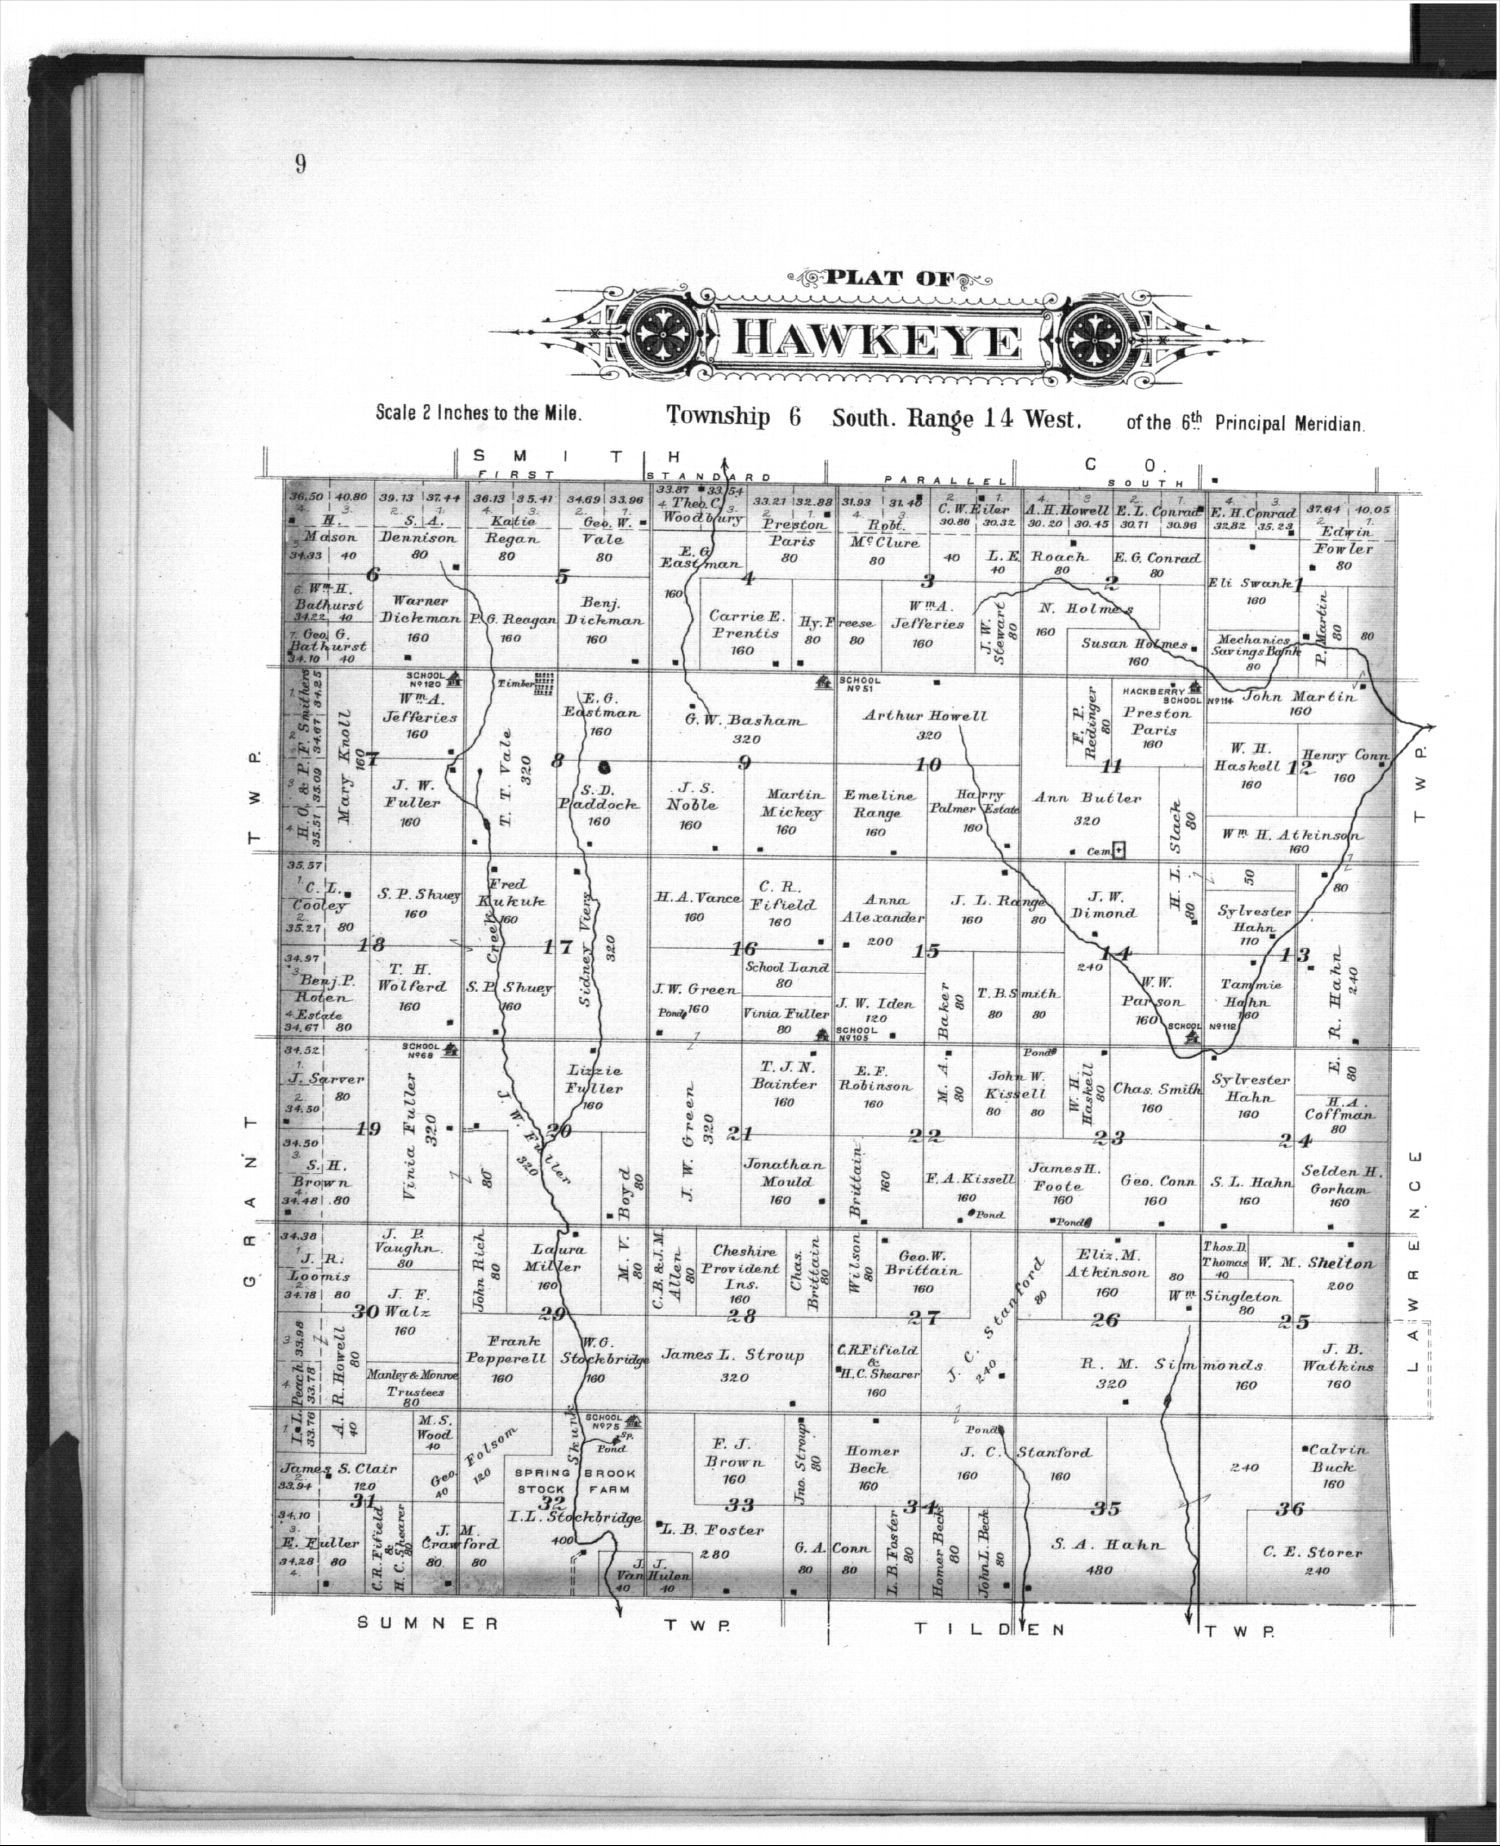 Plat book of Osborne County, Kansas - 9